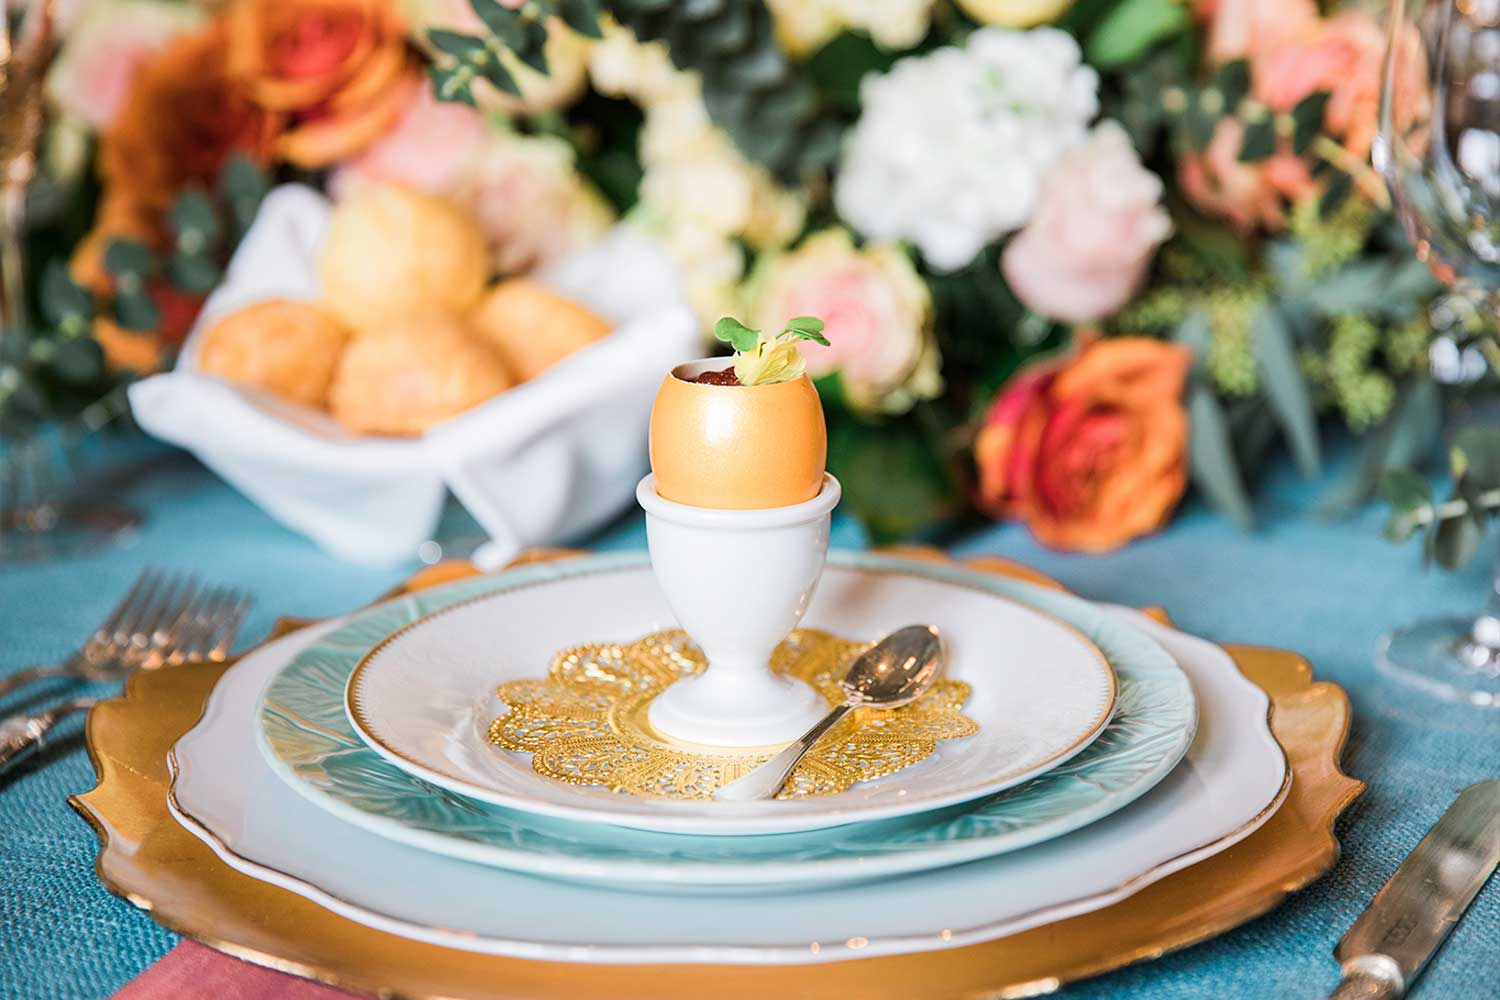 A table set for a wedding featuring a golden egg, colorful floral arrangement and blue table cloth.